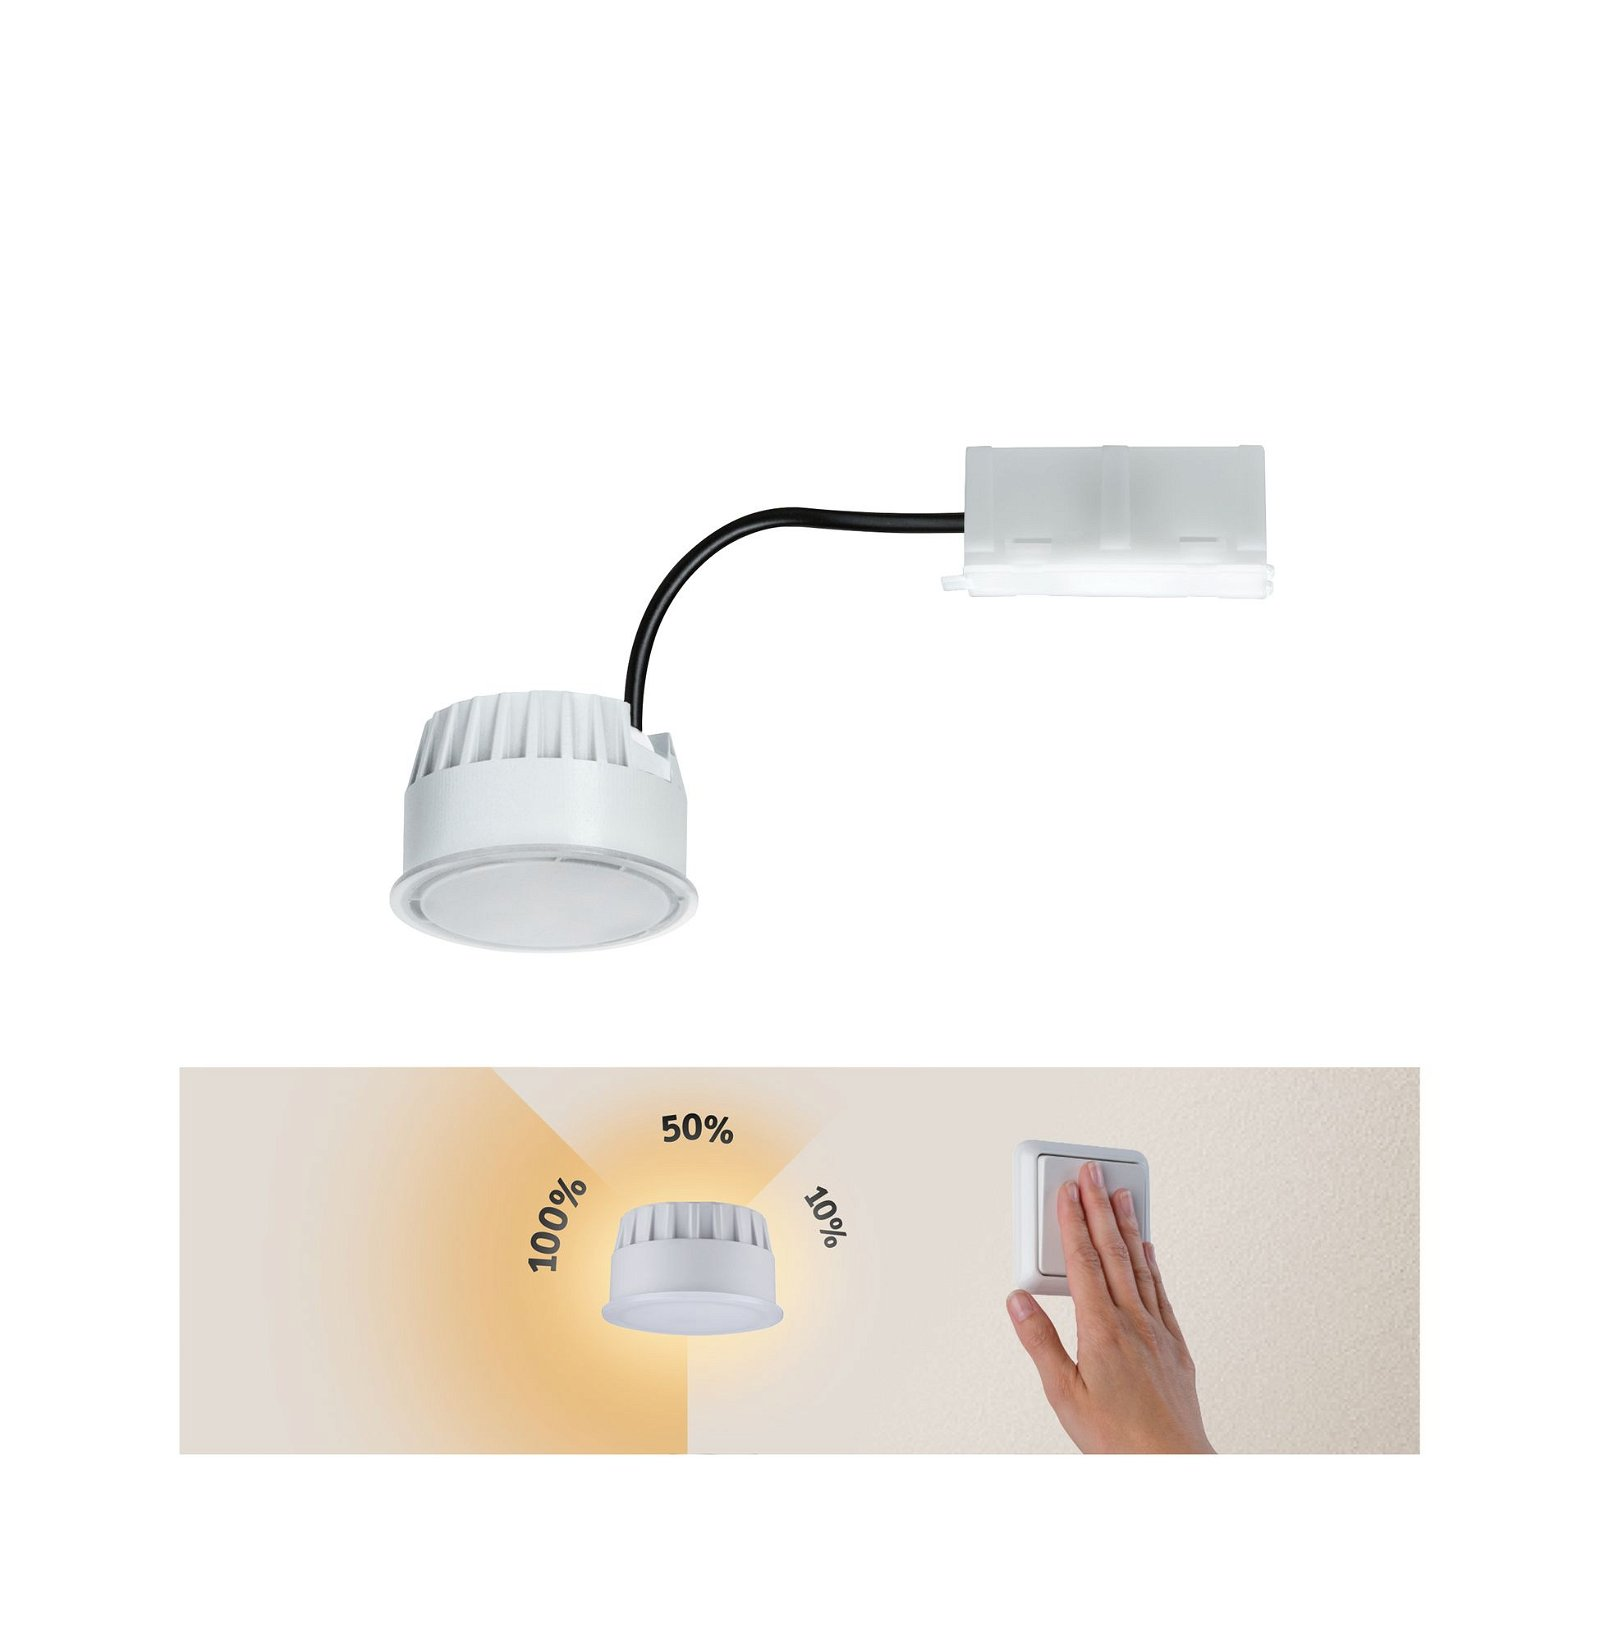 LED-module inbouwlamp 3-Step-Dim Base Coin rond 51mm Coin 5W 350lm 230V 3000K Opaal